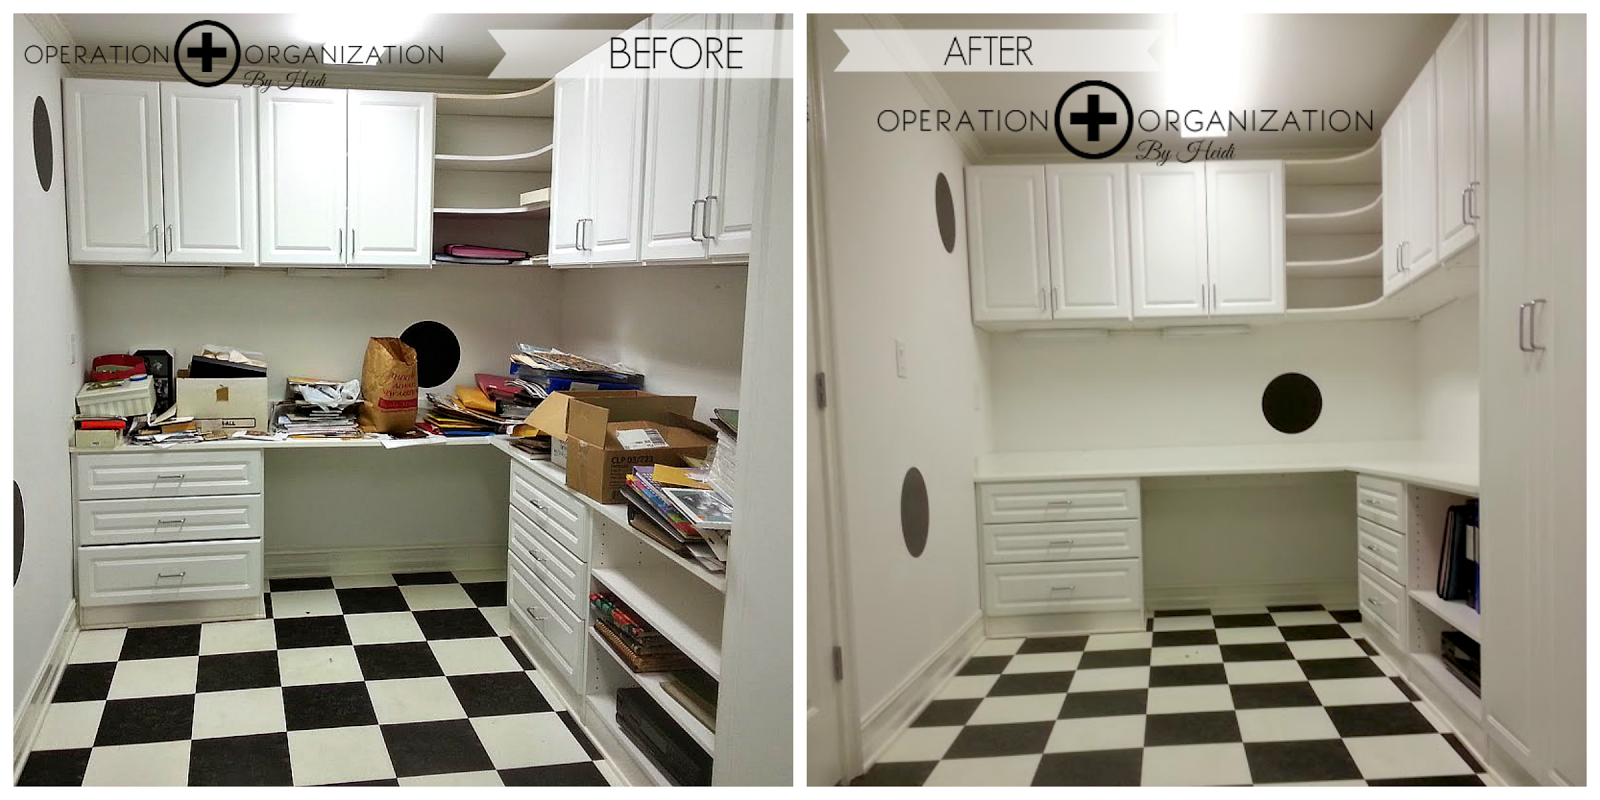 Craft Room Before and After - Operation Organization by Heidi, Peachtree City, Ga Professional Organizer.